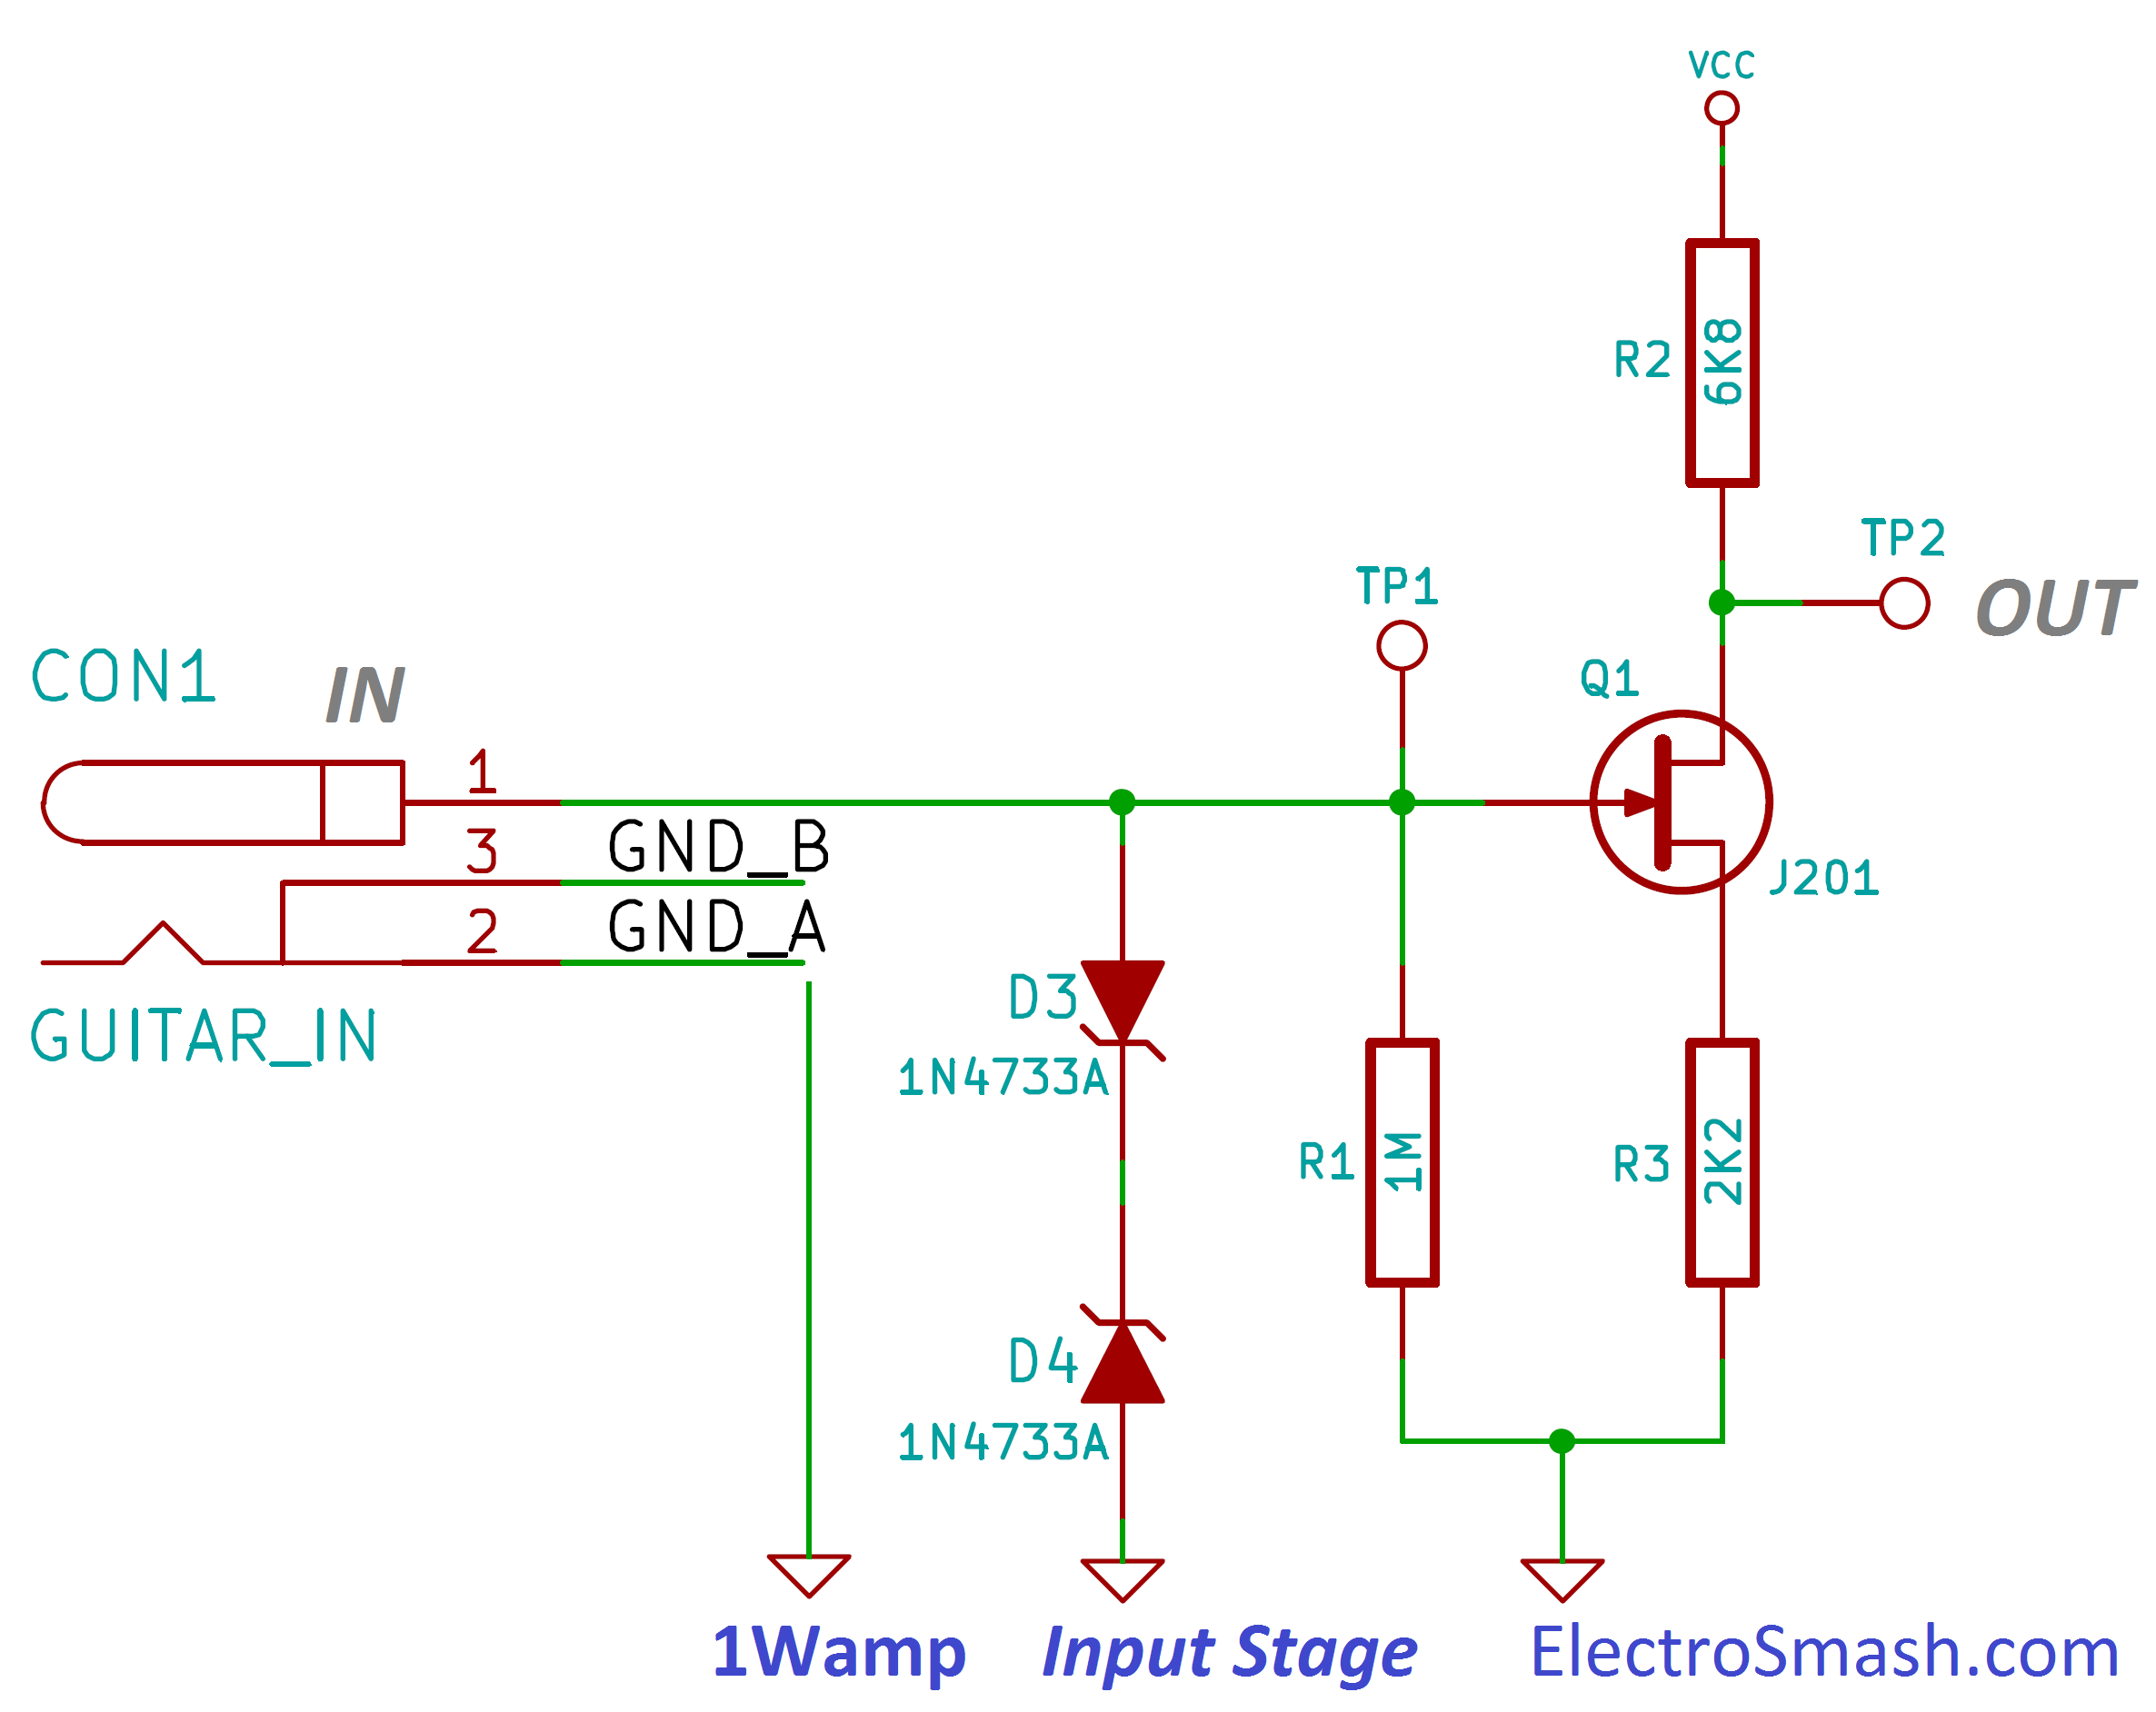 Electrosmash 1wamp Electroc Guitar Amplifier Tube Amp Diagram Jfet Input Stage